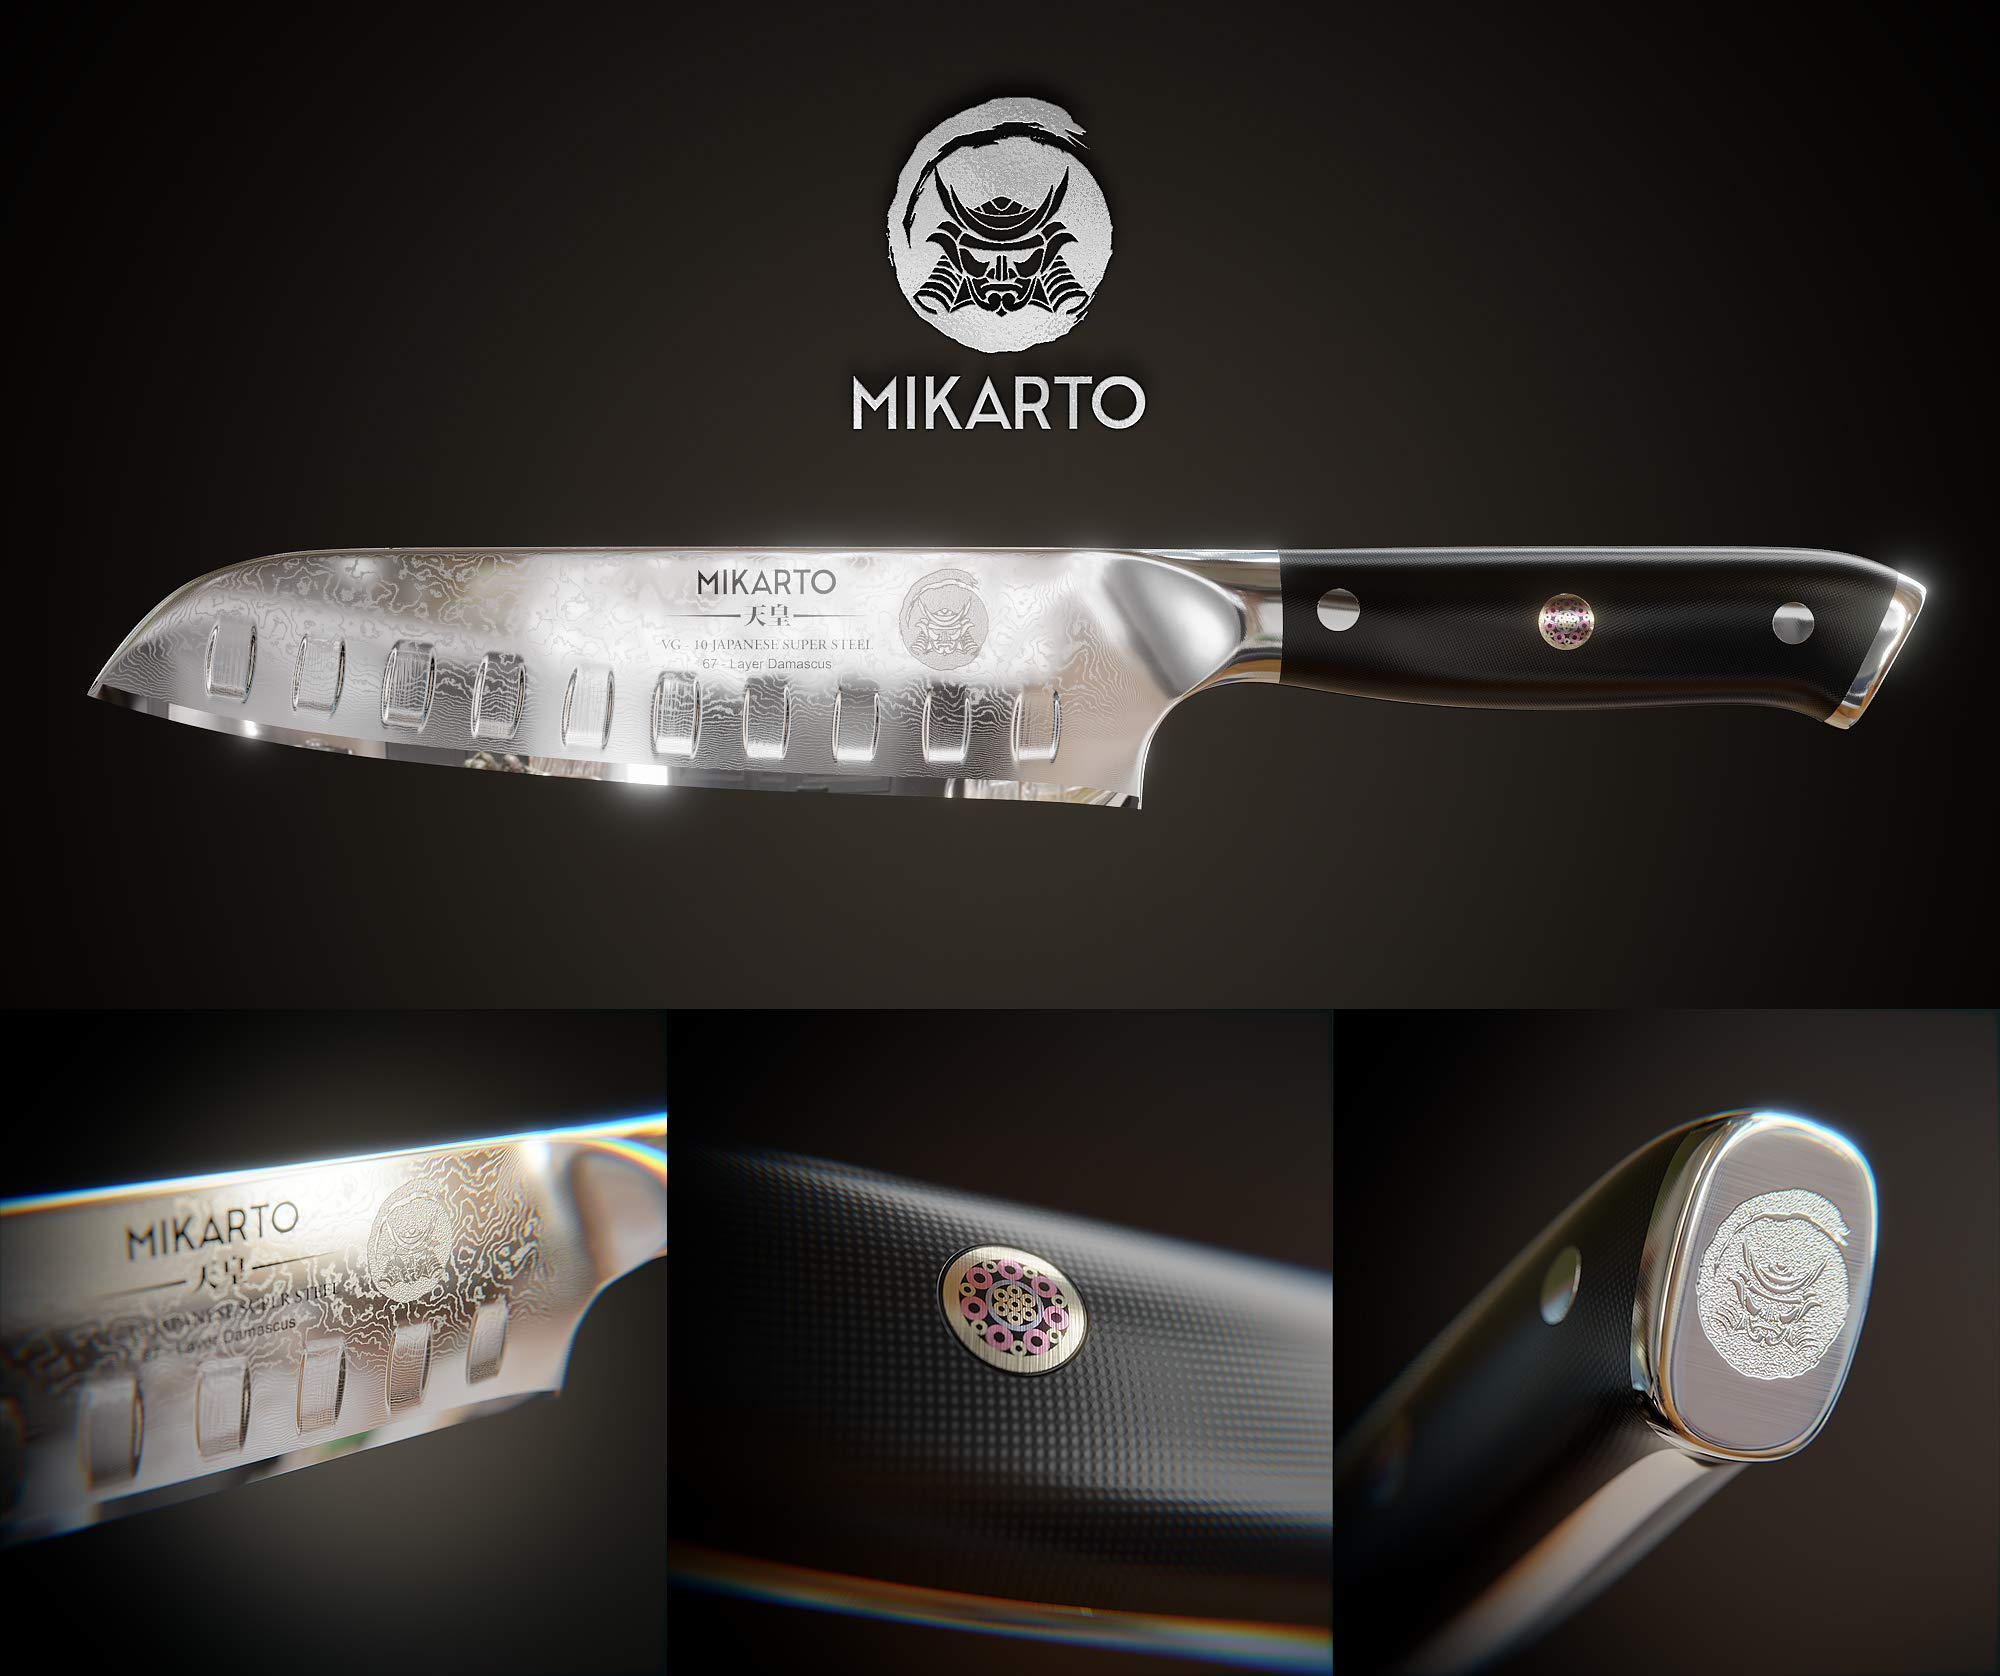 Santoku Japanese Chef Knife, 7 inch, Professional Grade - Damascus Stainless Steel Knife with Tsunami Rose Finish - Ultra Sharp, High Carbon Kitchen Knives - Quality, All Purpose, Precision Cutting by MIKARTO Knife Ware (Image #3)